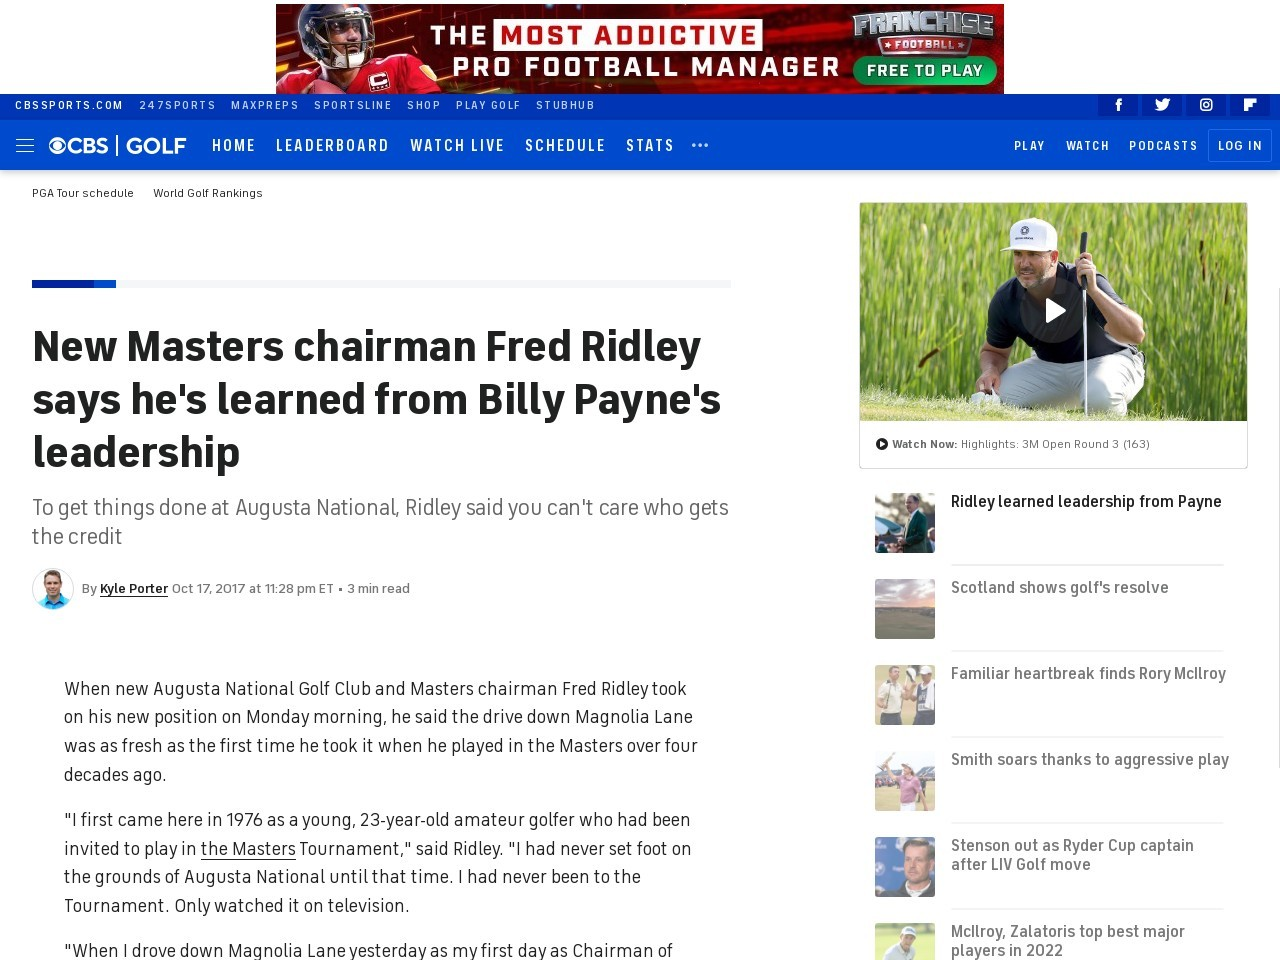 New Masters chairman Fred Ridley says he's learned from Billy Payne's leadership